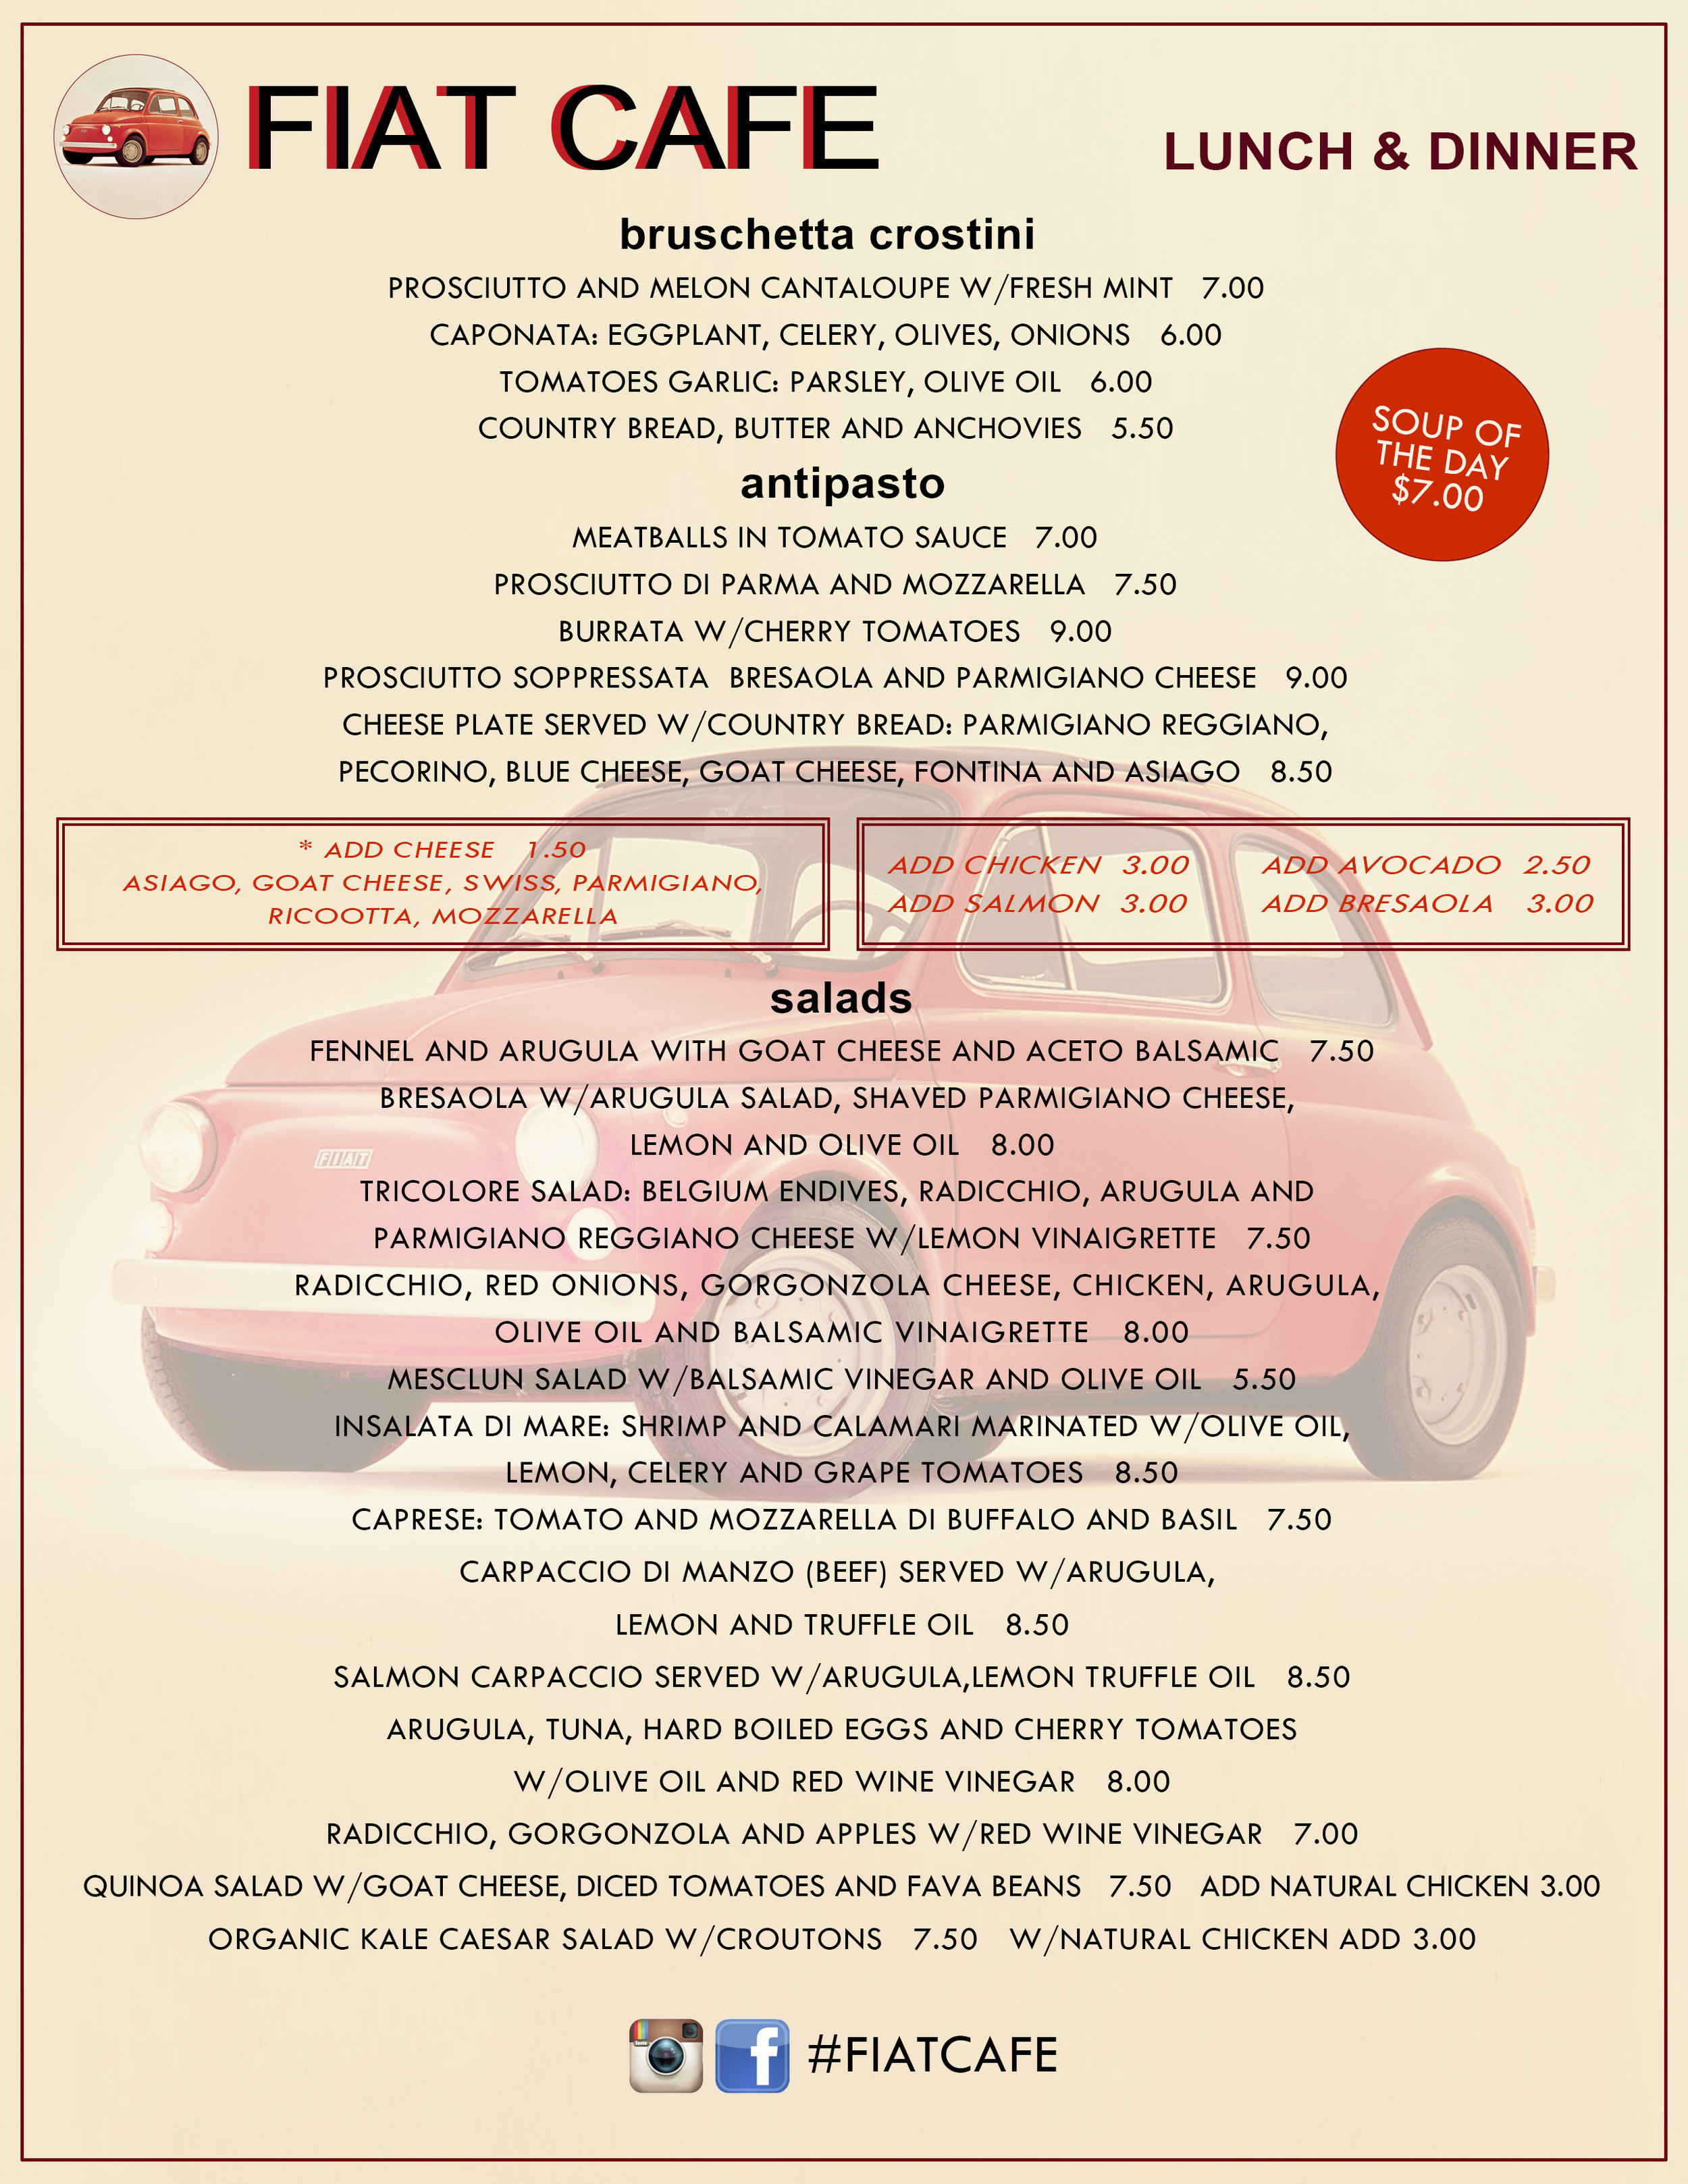 Lunch/dinner menu layout and design for Fiat Cafe.